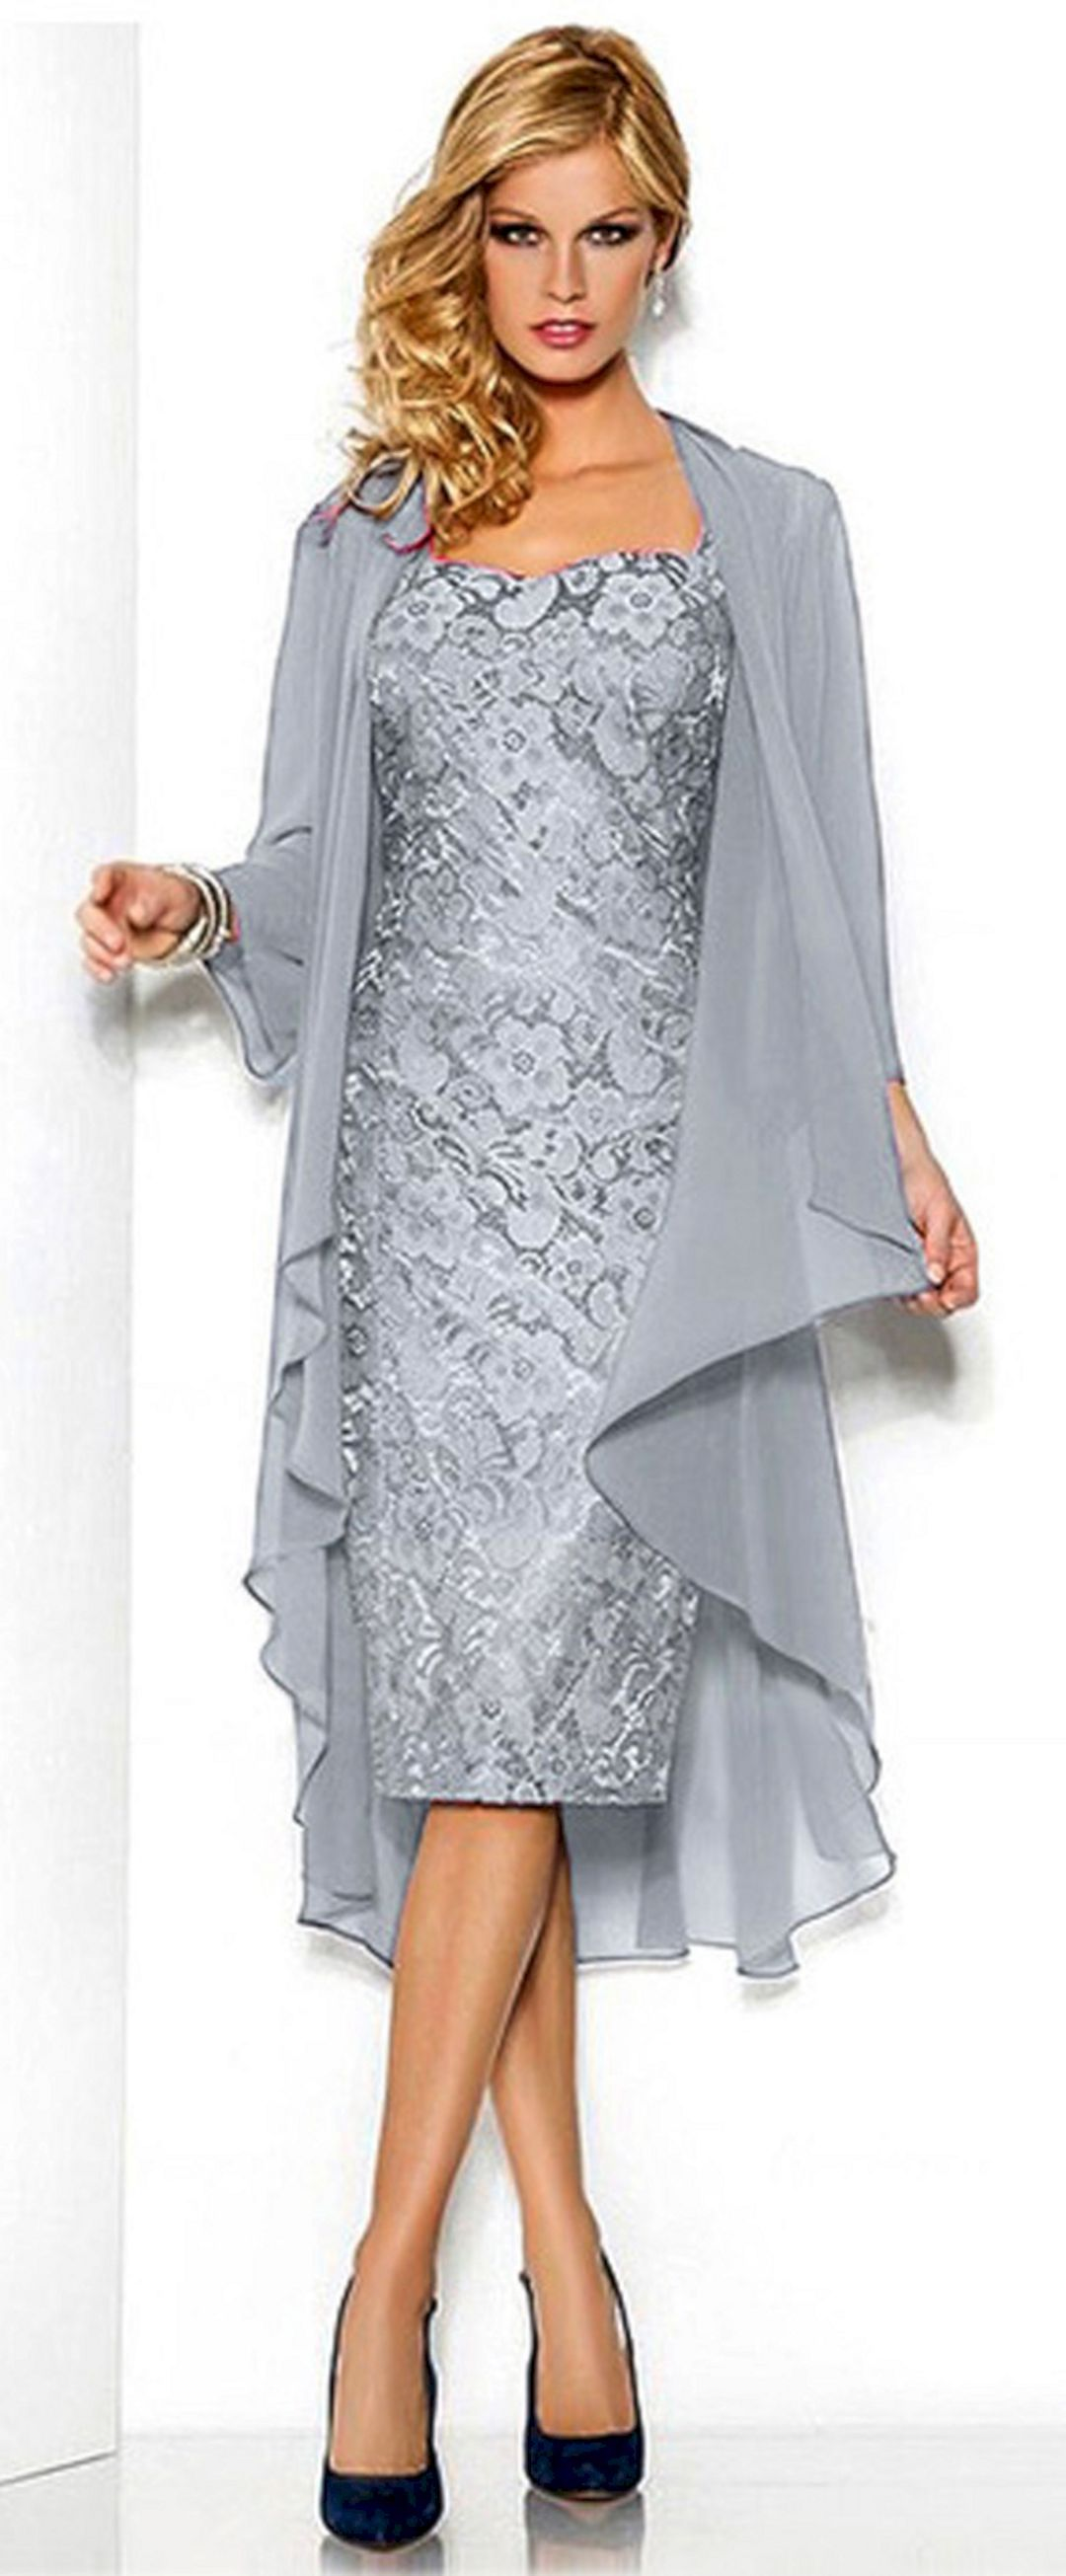 10++ Mother of the bride dresses 2021 ideas info